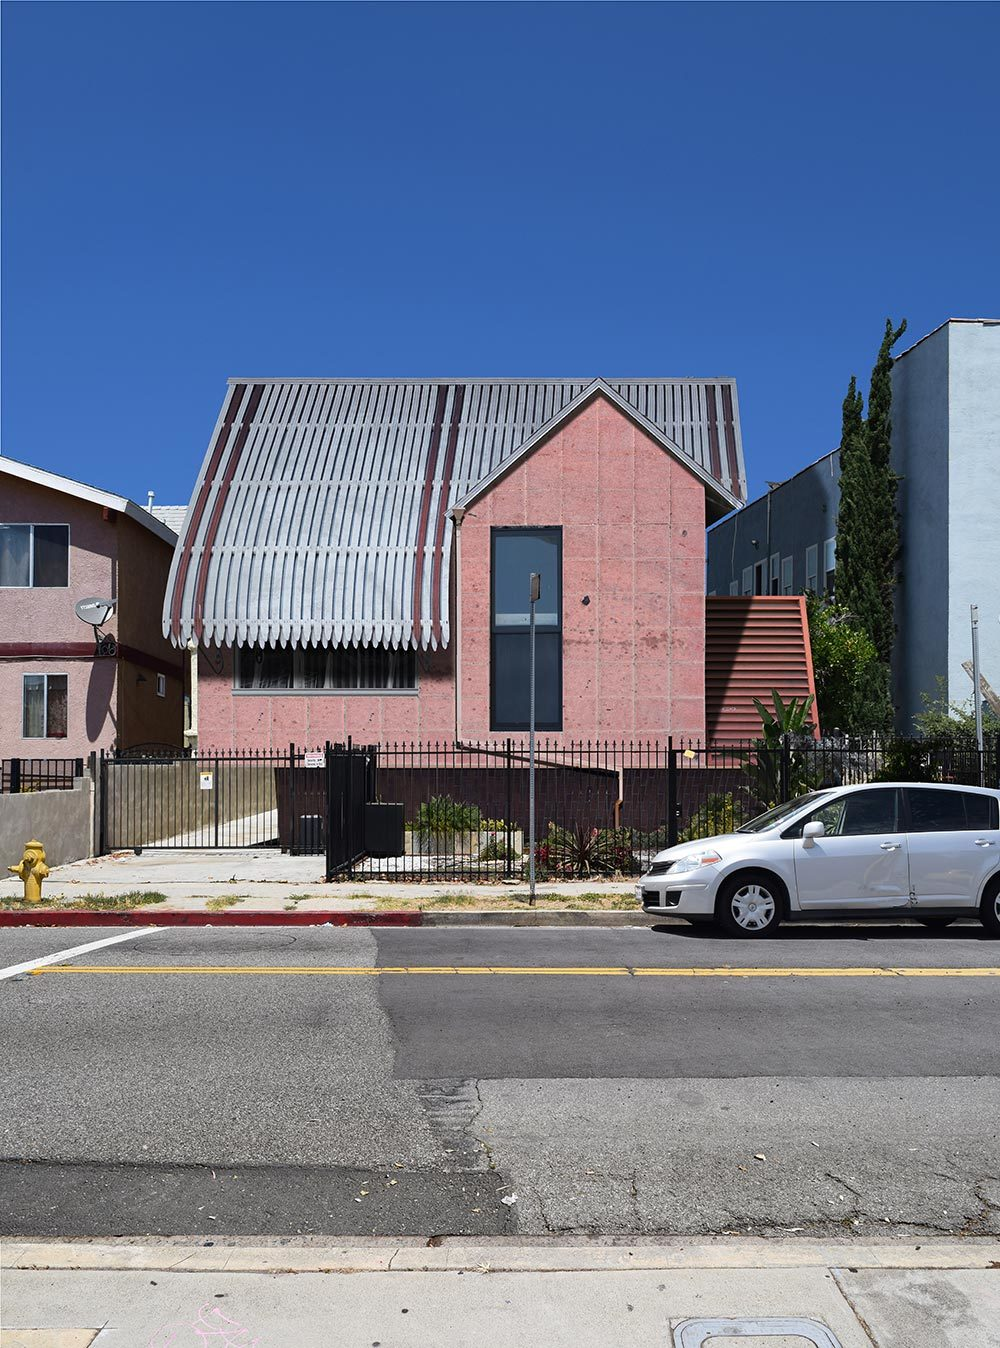 designed facade of house sits in context